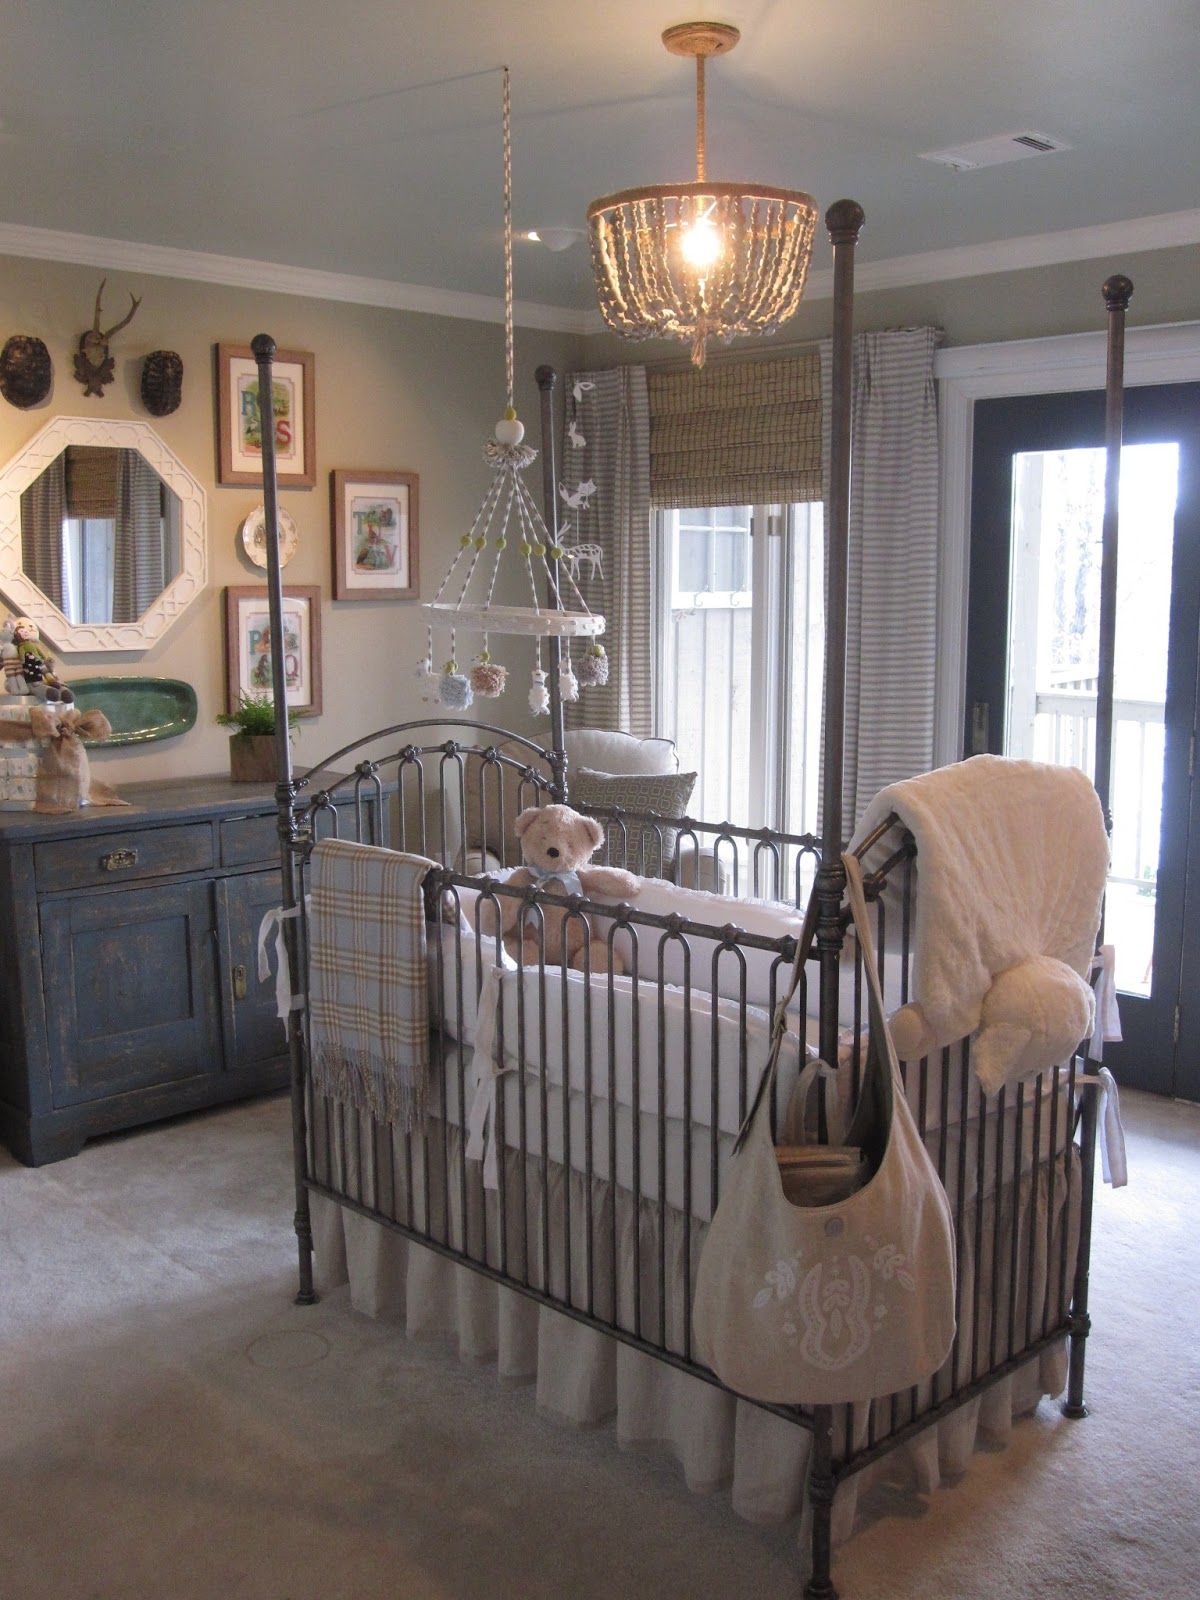 Our Little Baby Boy S Neutral Room: Little Boy's Nursery Maggie Griffin Design